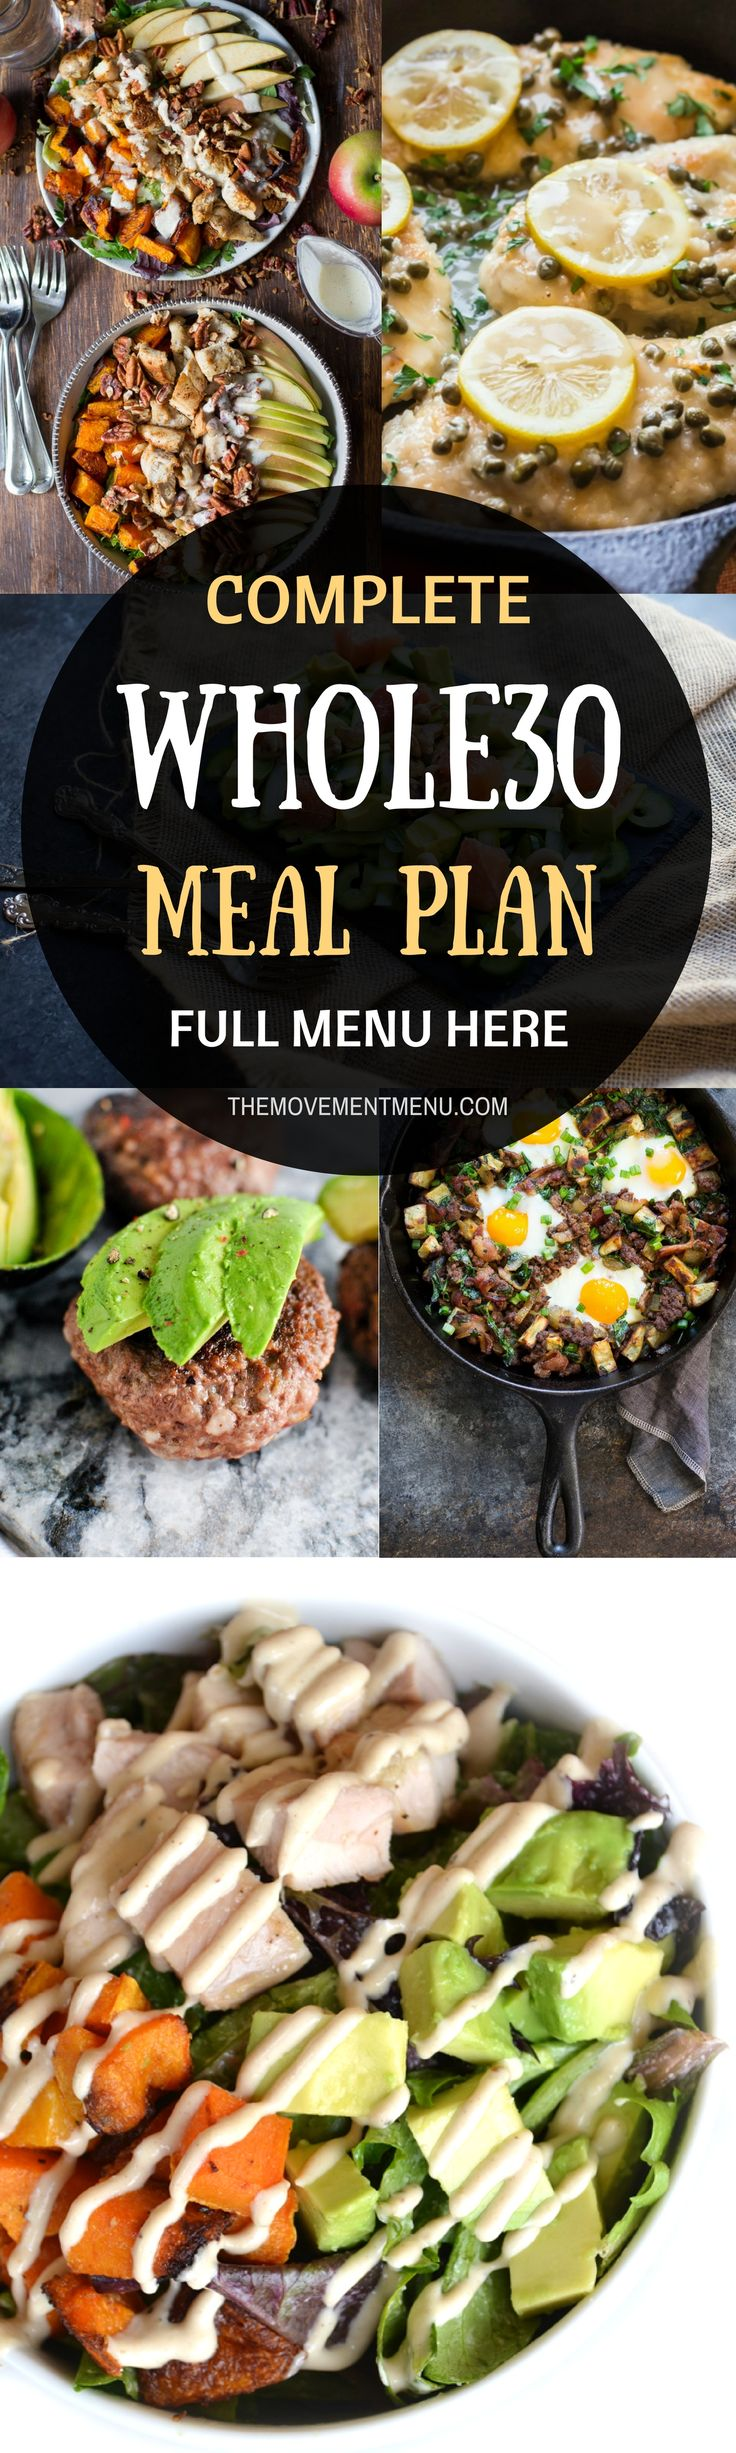 Whole30 meal plan that's quick and healthy! A complete, full menu for your Whole30! Whole30 recipes just for you. Whole30 meal planning. Whole30 meal prep. Healthy paleo meals. Healthy Whole30 recipes. Easy Whole30 recipes. Best paleo shopping guide. via @themovementmenu